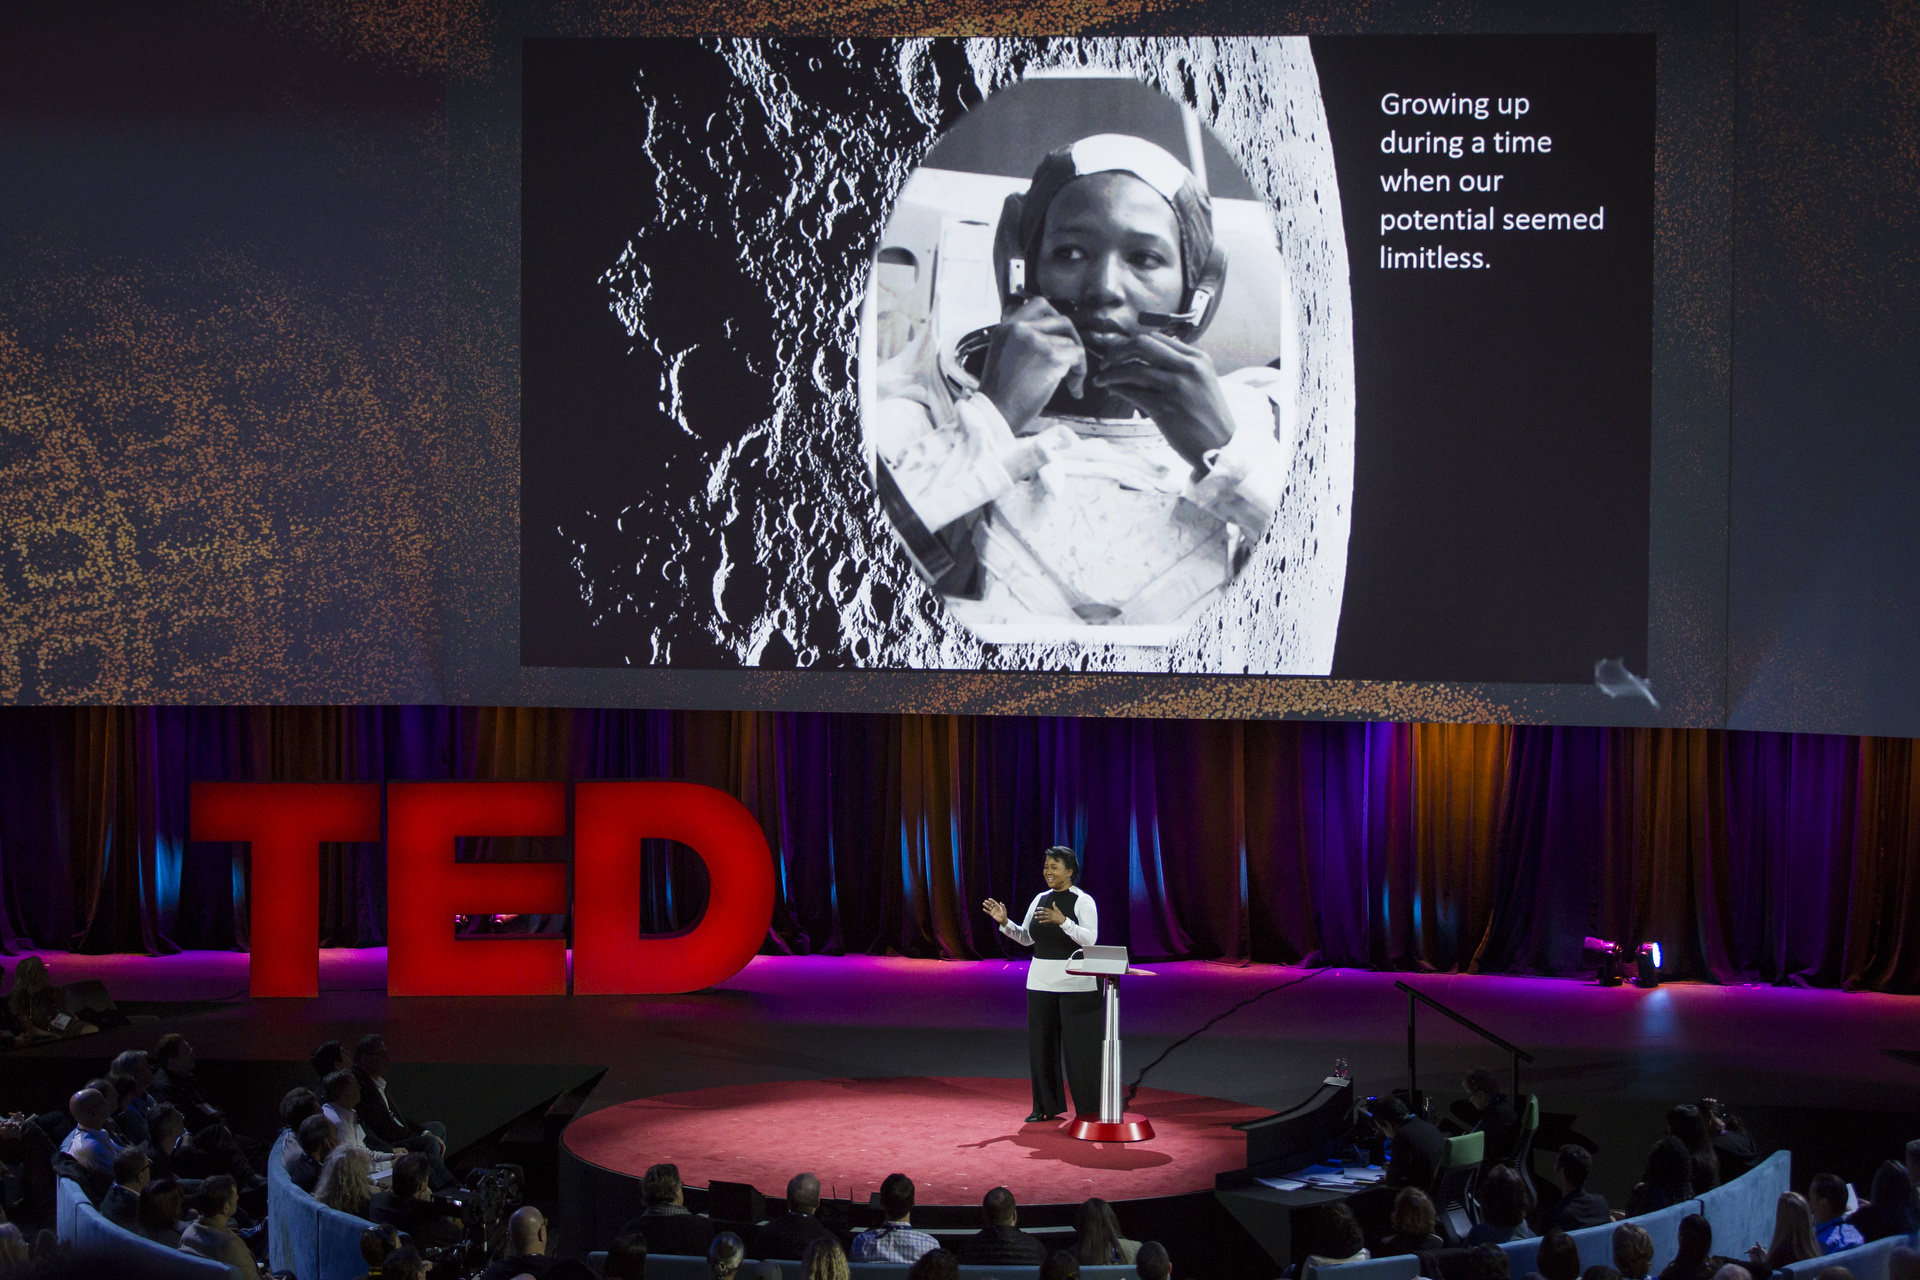 Mae Jemison is one of the many speakers at TED2016 who evoked the moonshot, calling for us to work across disciplines toward radical leaps. But there was another camp of thought at the conference, of focusing on small, specific problems. Photo: Marla Aufmuth / TED